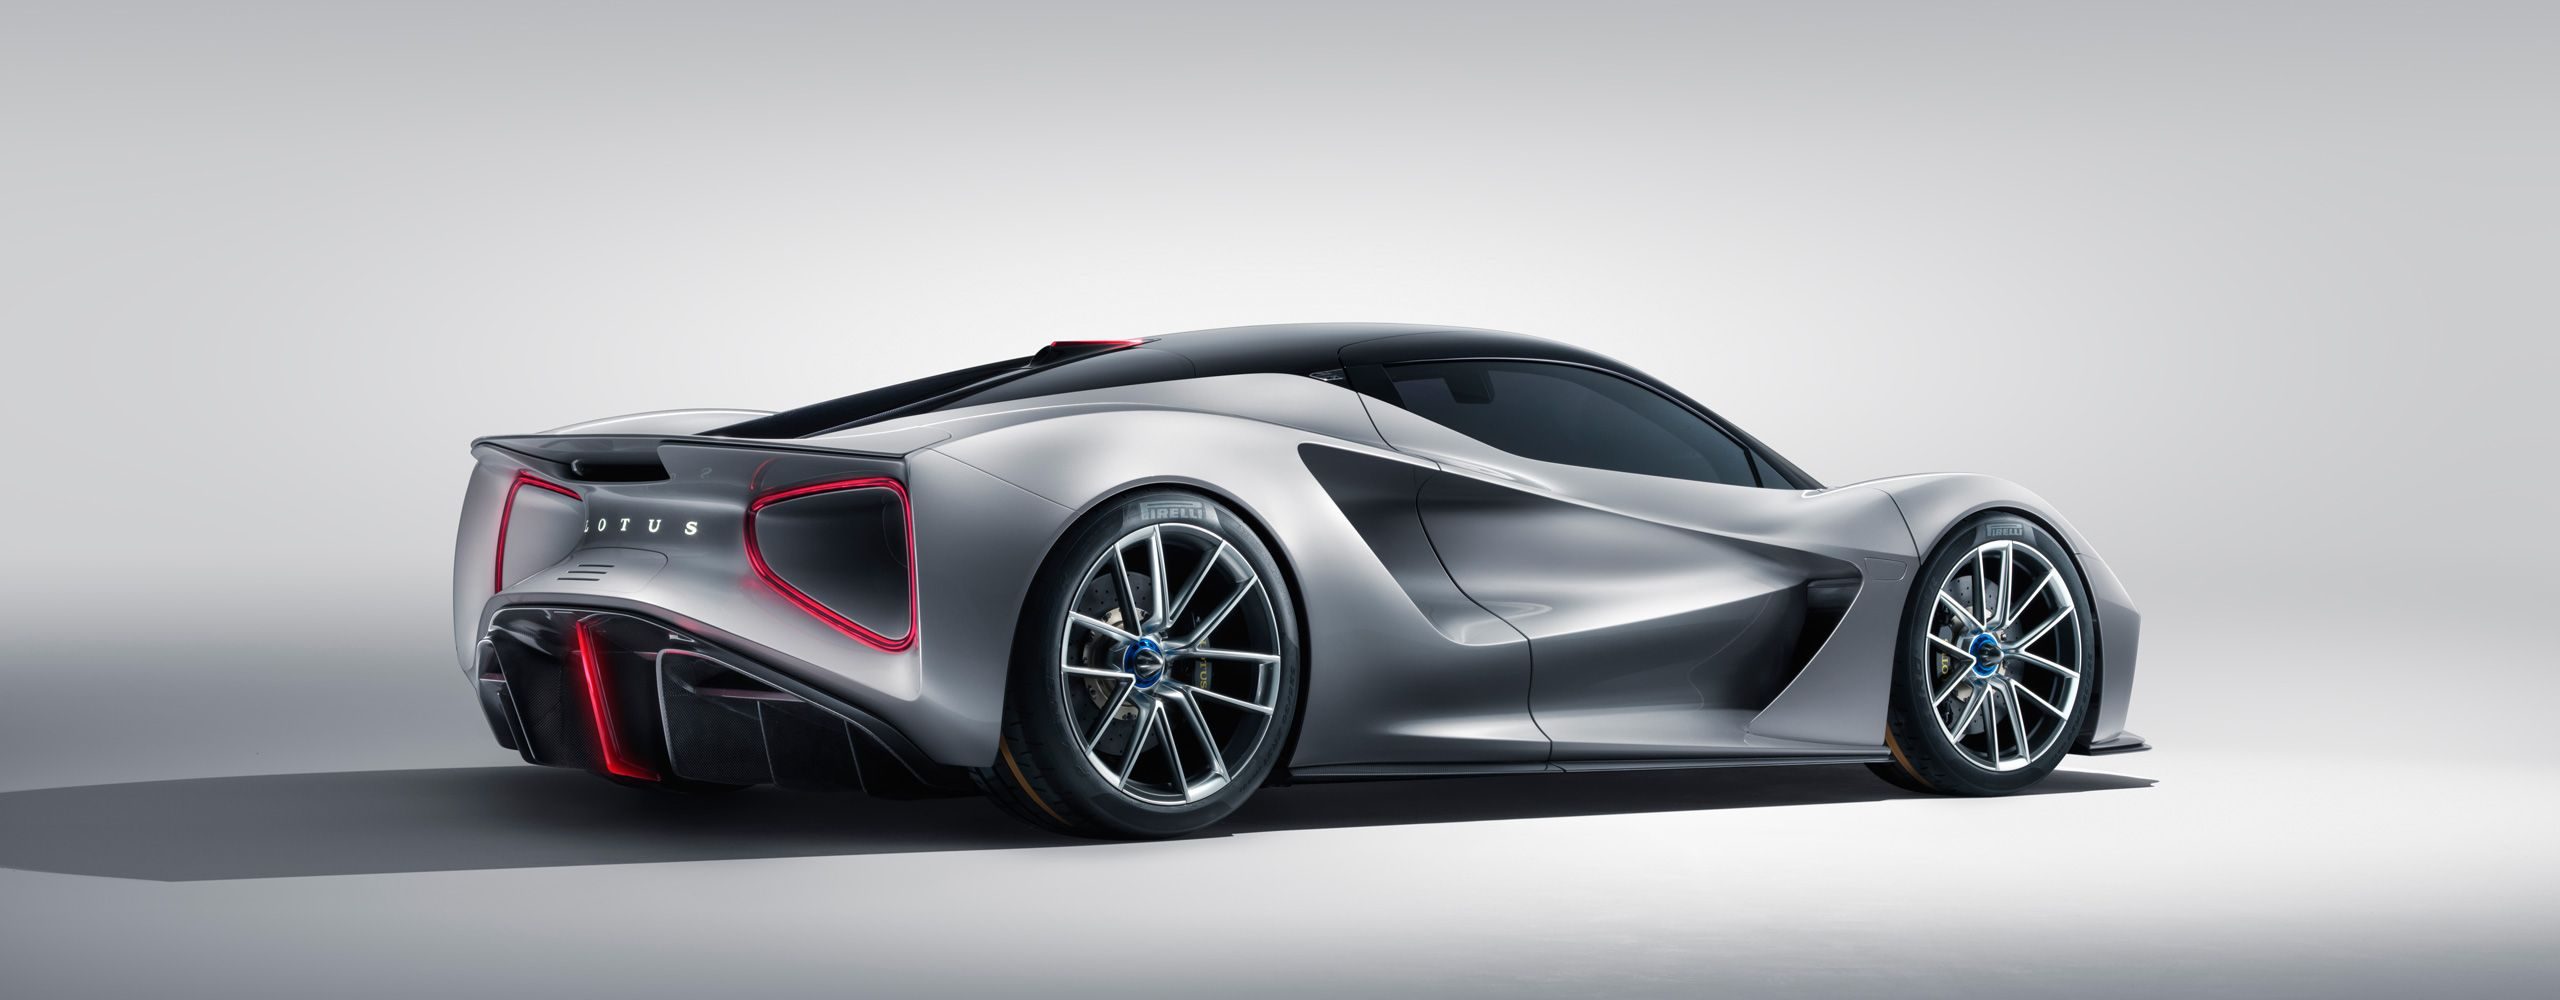 Lotus Evija-Electric Hypercar-5